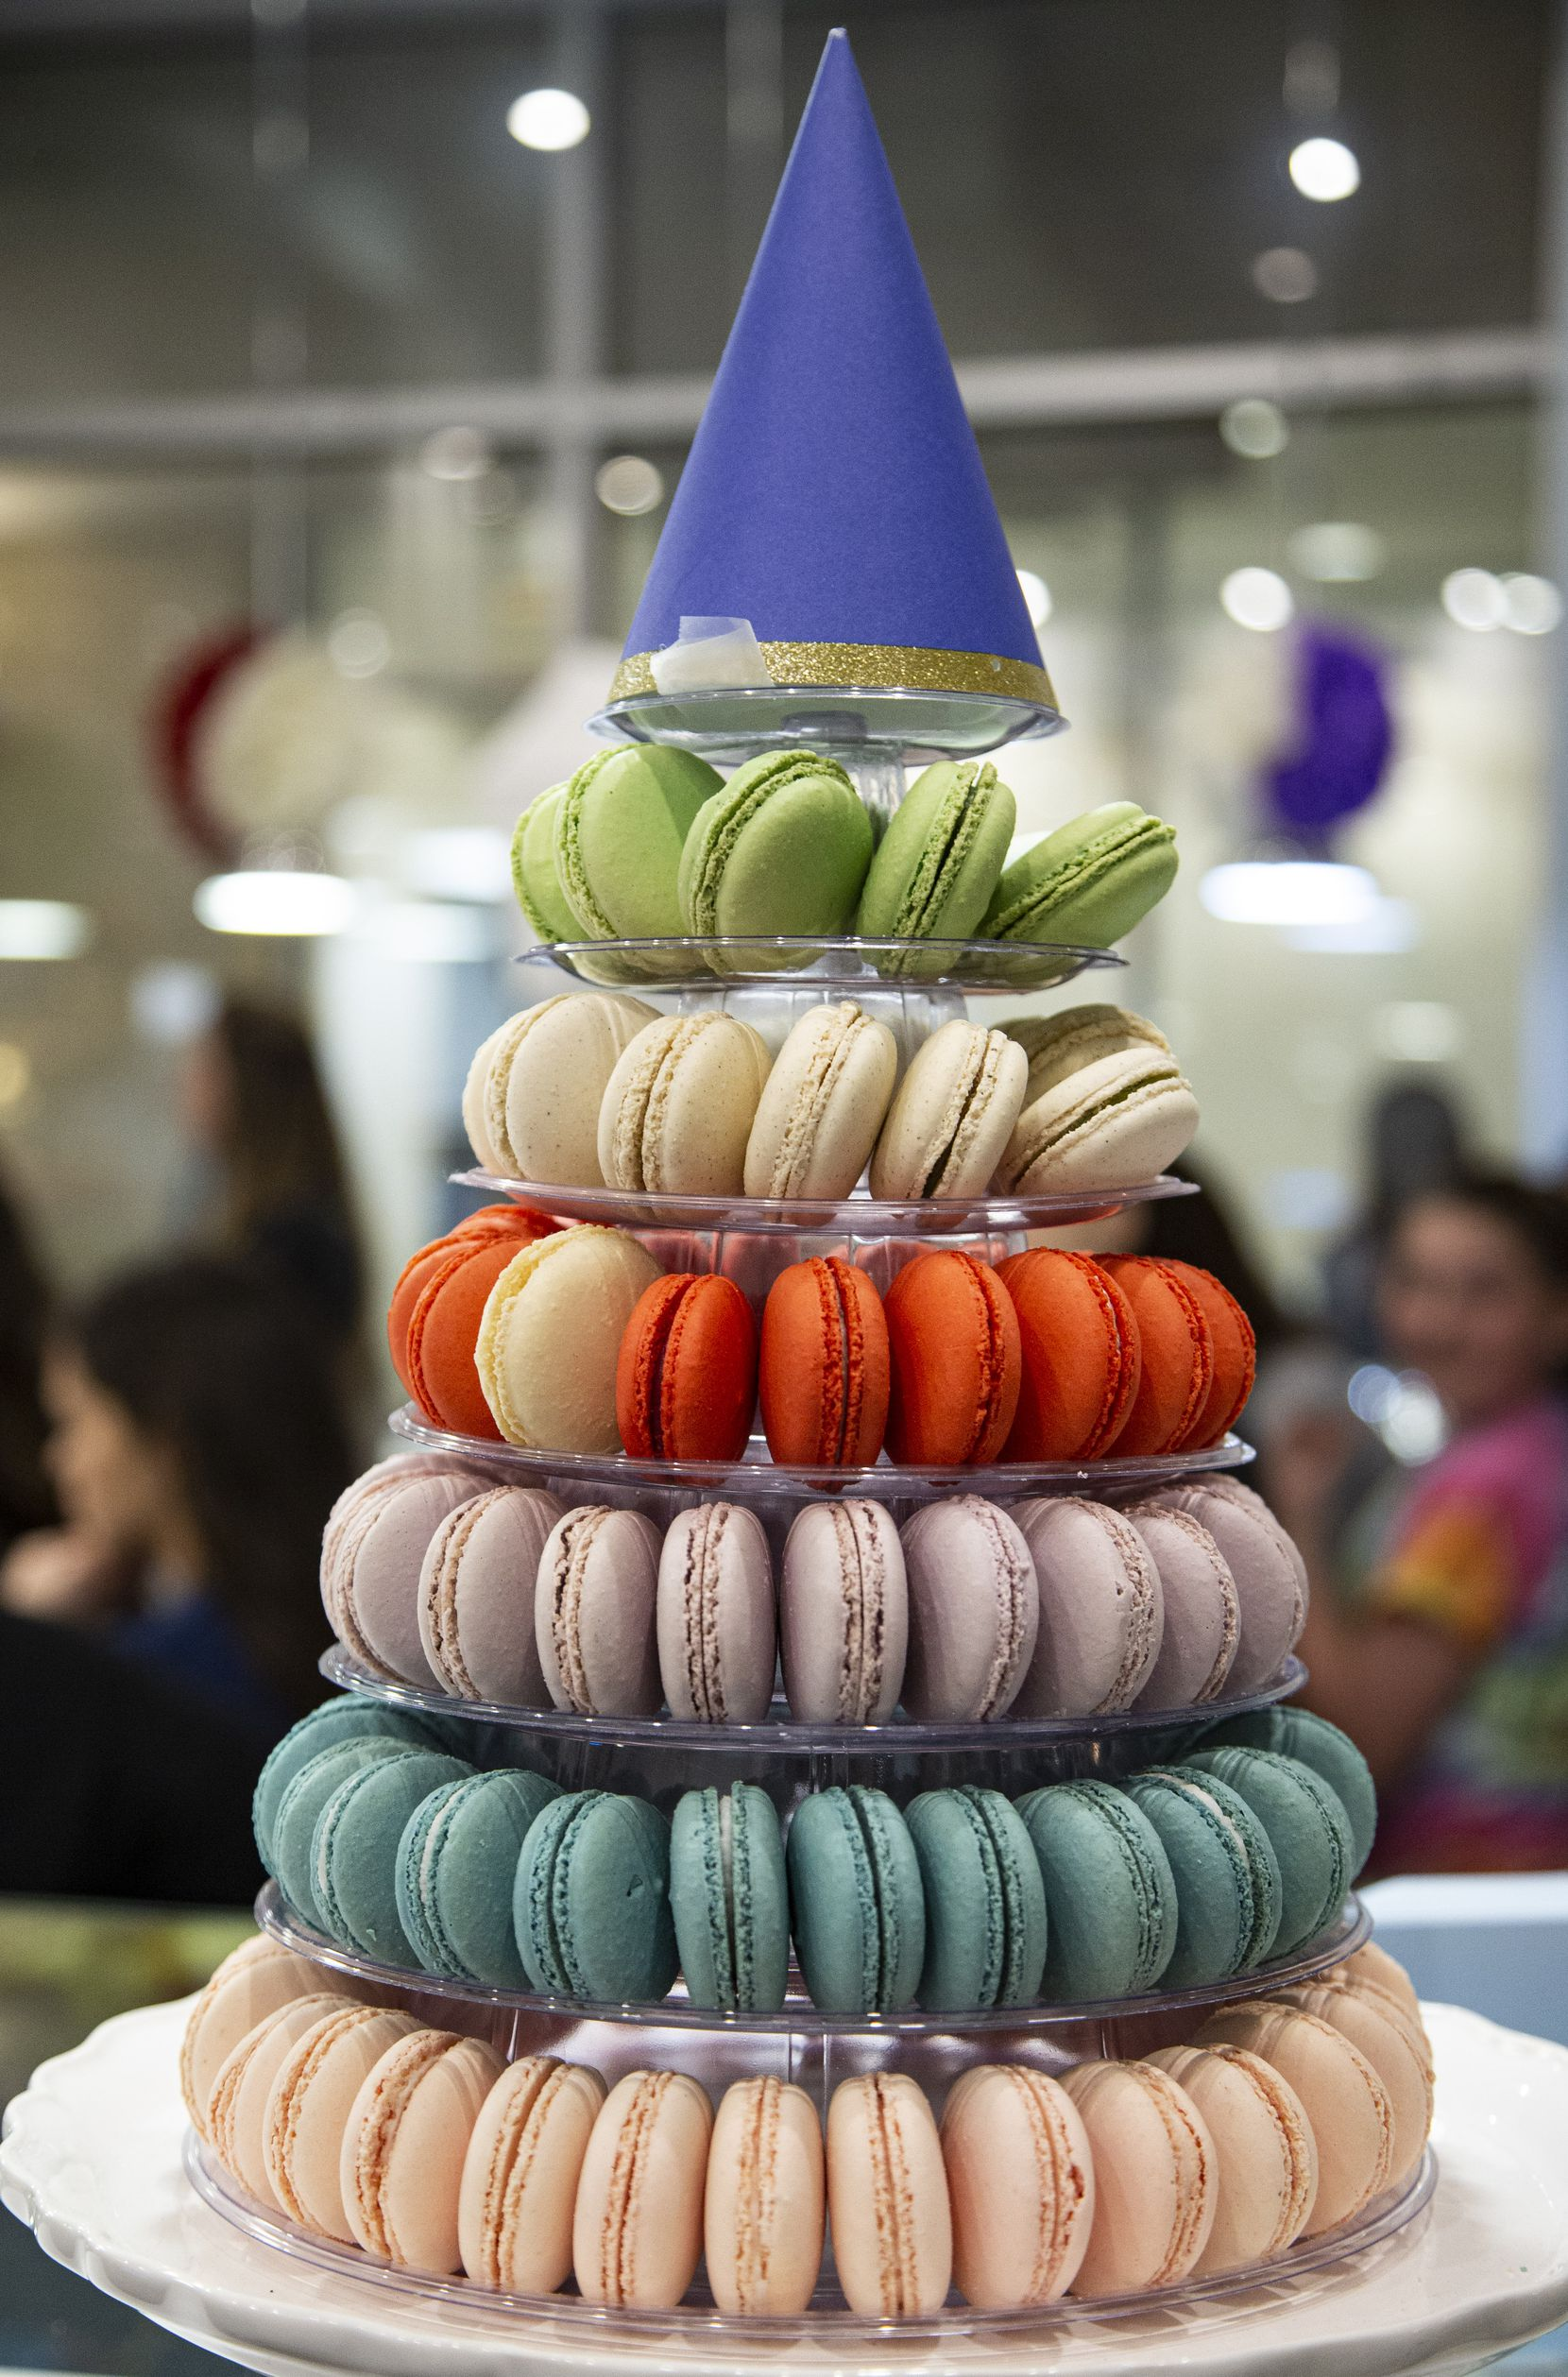 Andrea Meyer, the owner and pastry chef of Bisous Bisous Pâtisserie, says she's been wanting to coordinate a day like this for a couple of years now, inspired by a number of other big cities that celebrate Macaron Day, such as Paris, New York and Toronto.